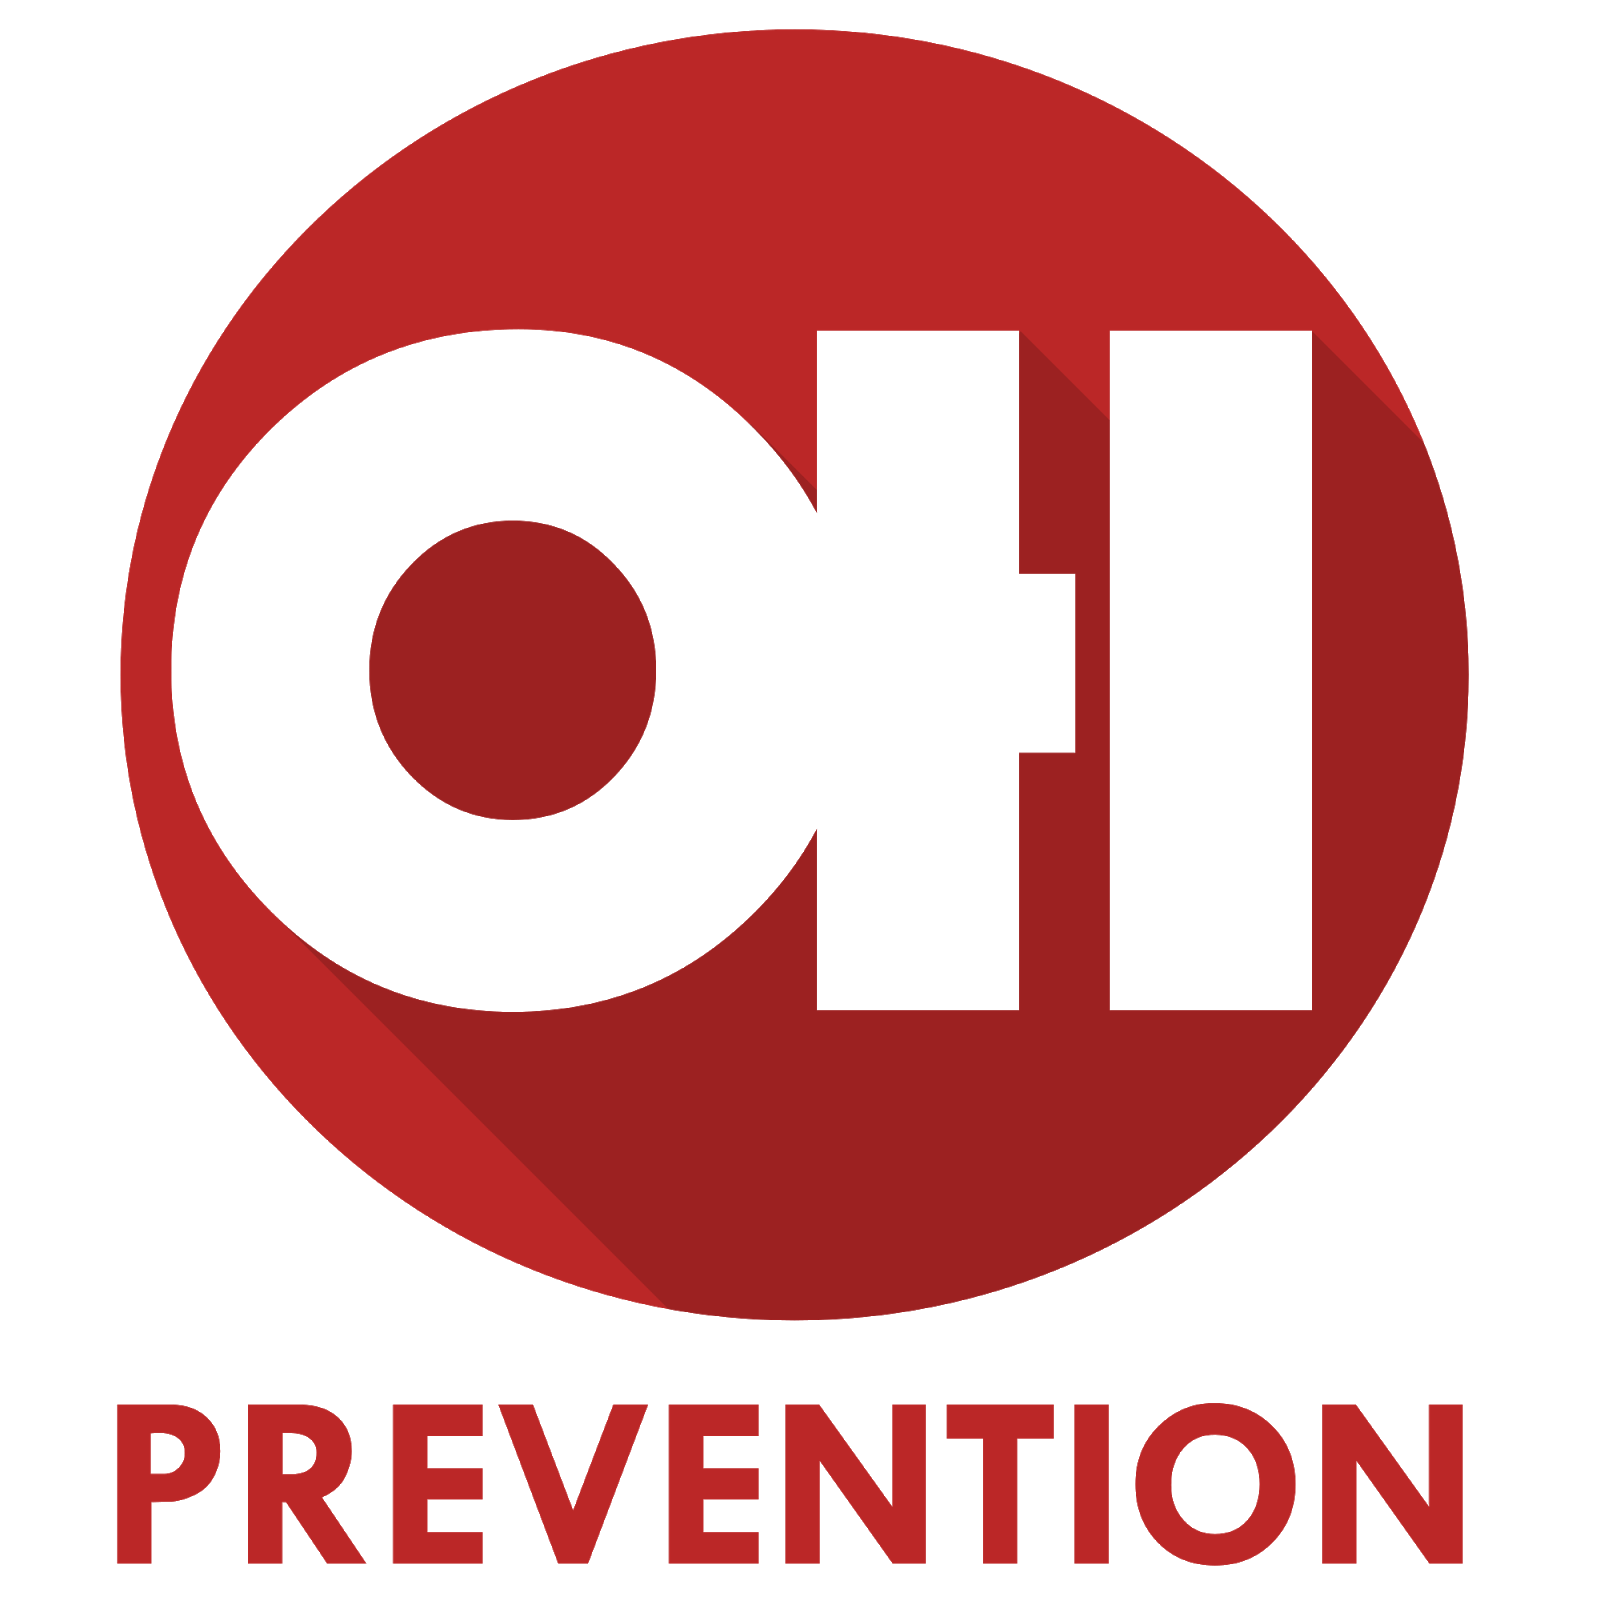 Logo del proyecto EFA199/16 Prevention_OH